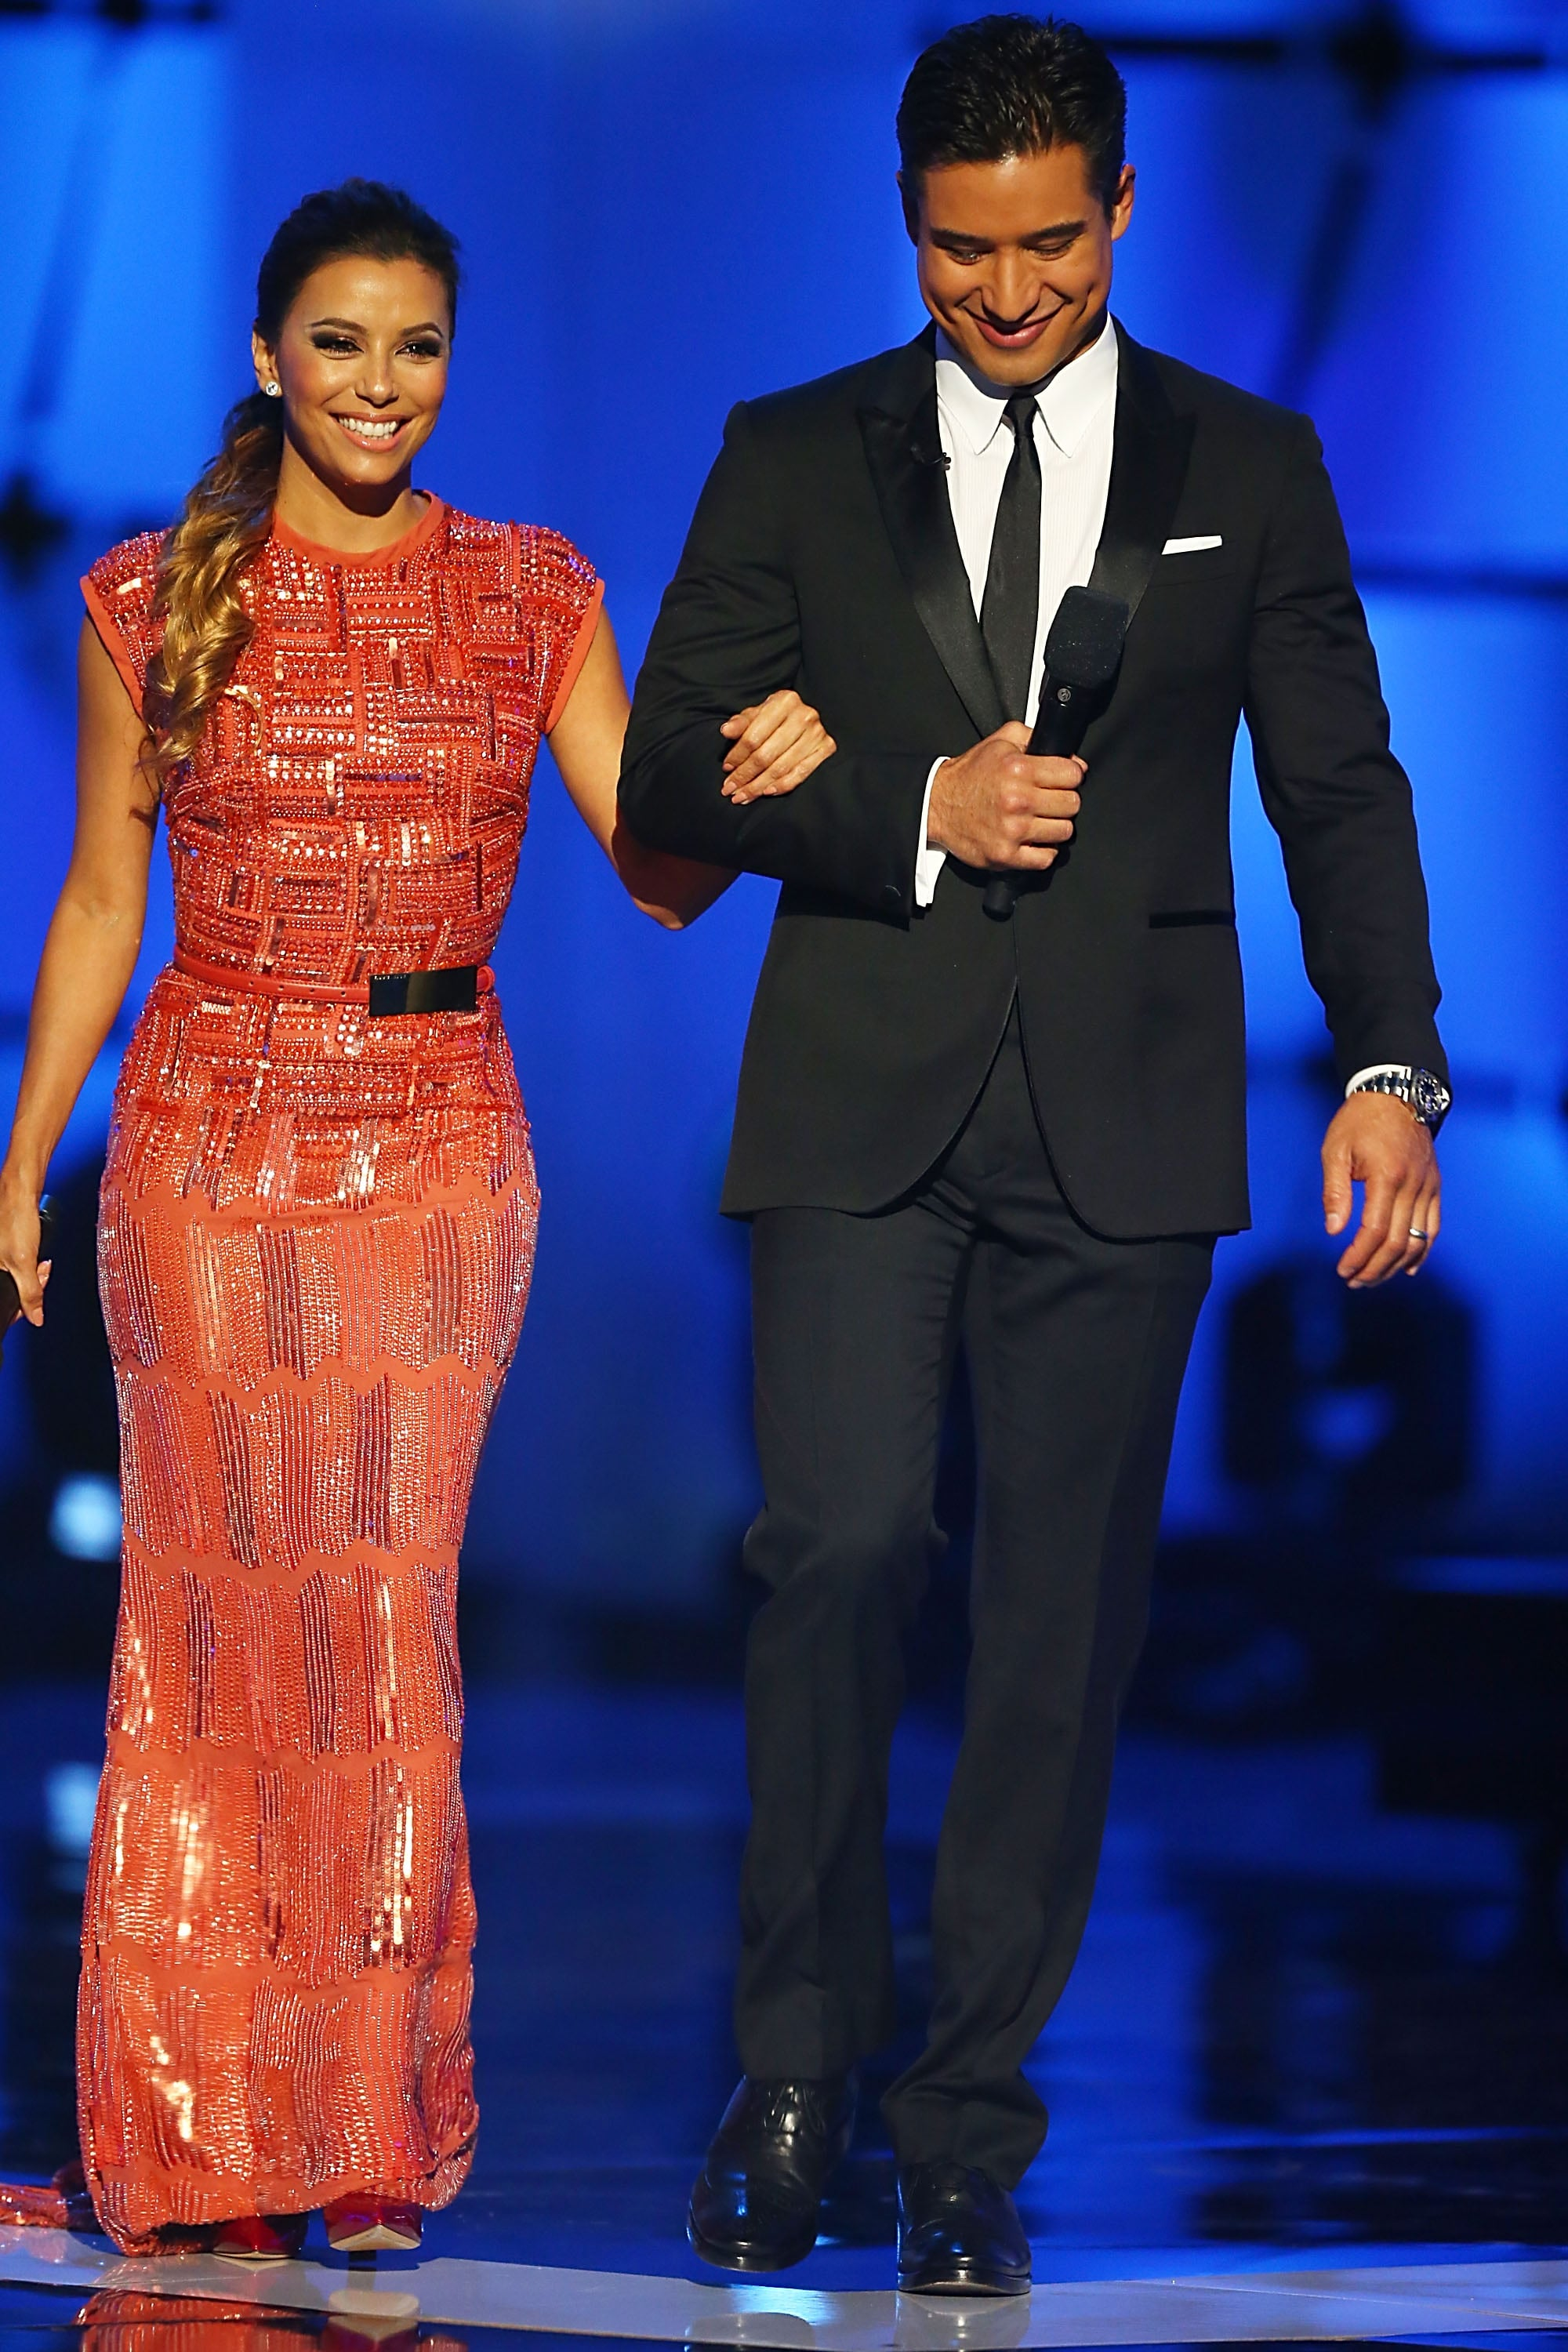 While making an appearance on stage with Mario Lopez, Eva glistened in an embellished coral Elie Saab gown.